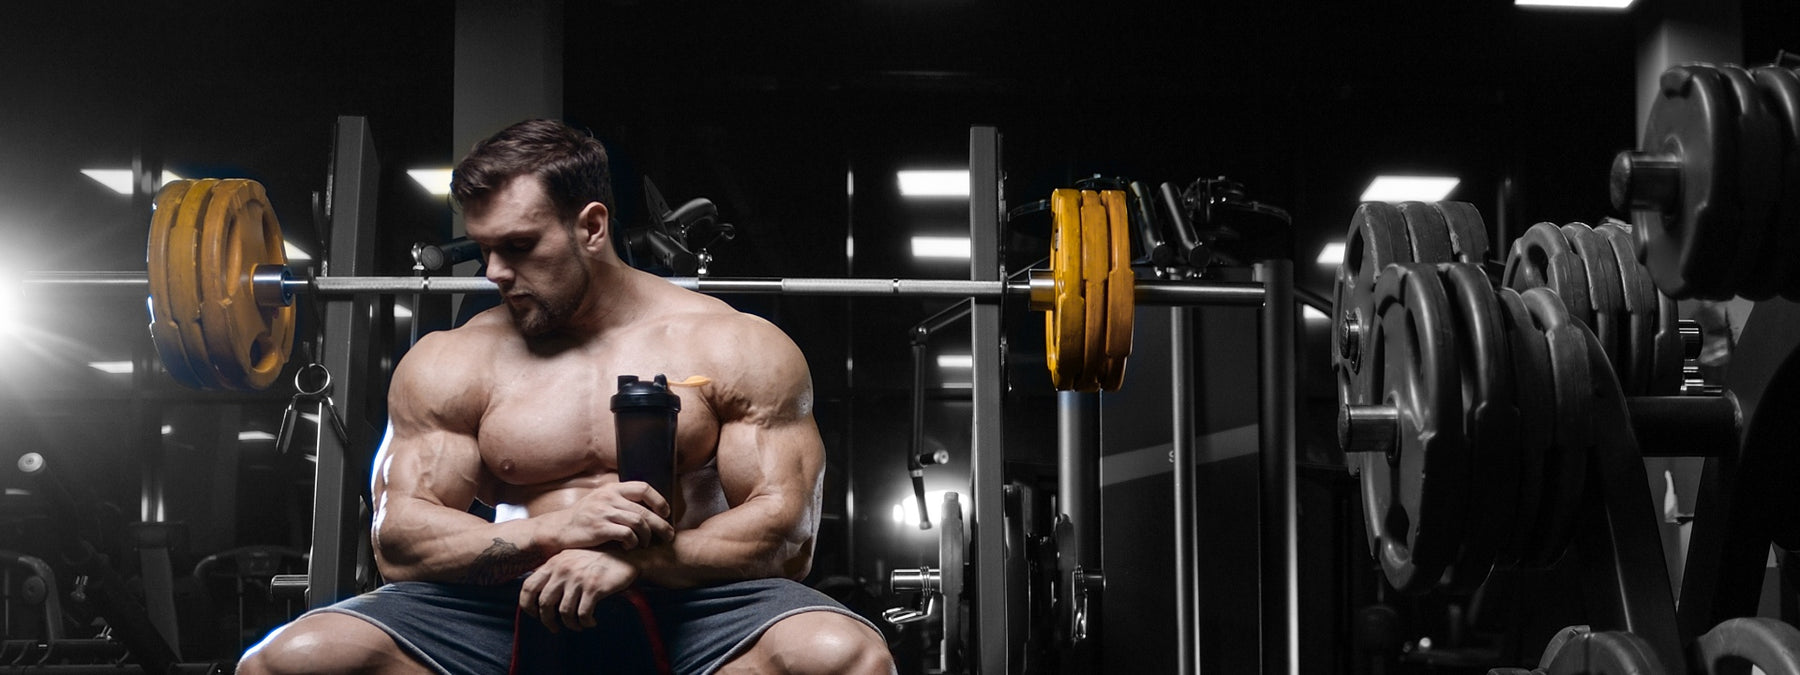 Build Brutal Bench Press Strength Using 20 Rep Sets